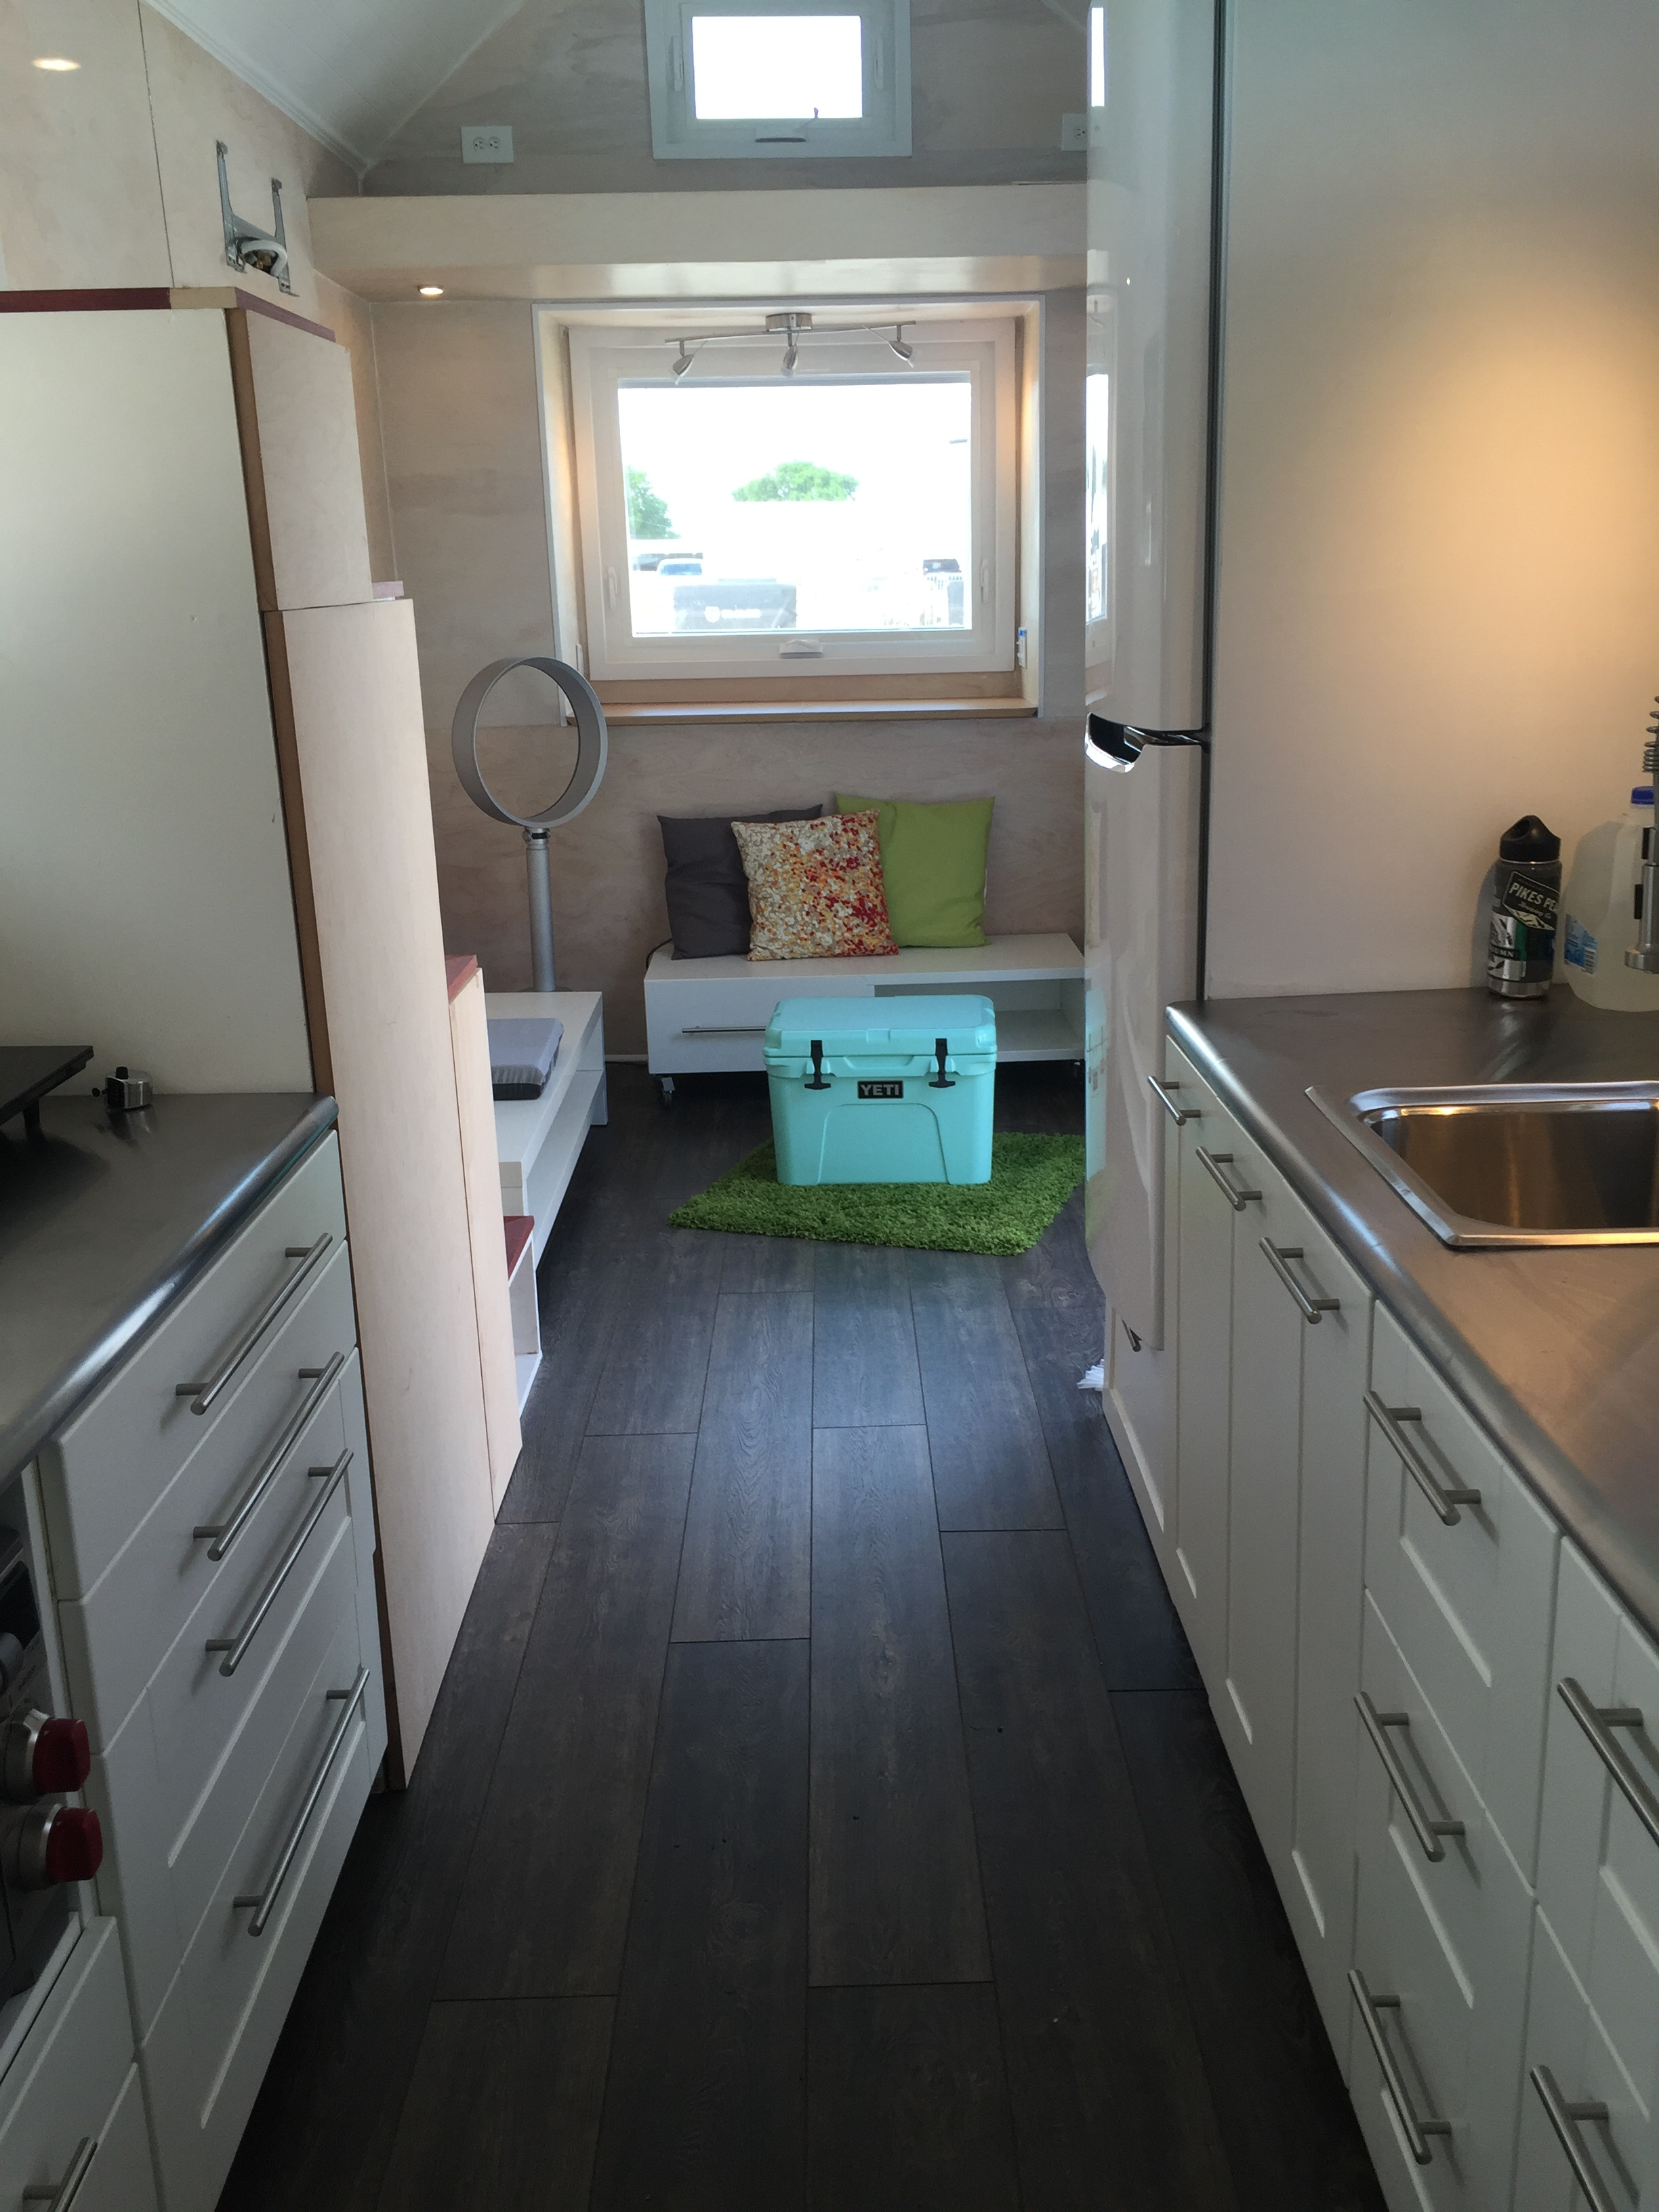 Ikea Kitchen Design Forum Using Ikea Cabinets In A Tiny House An In Depth Review Tiny